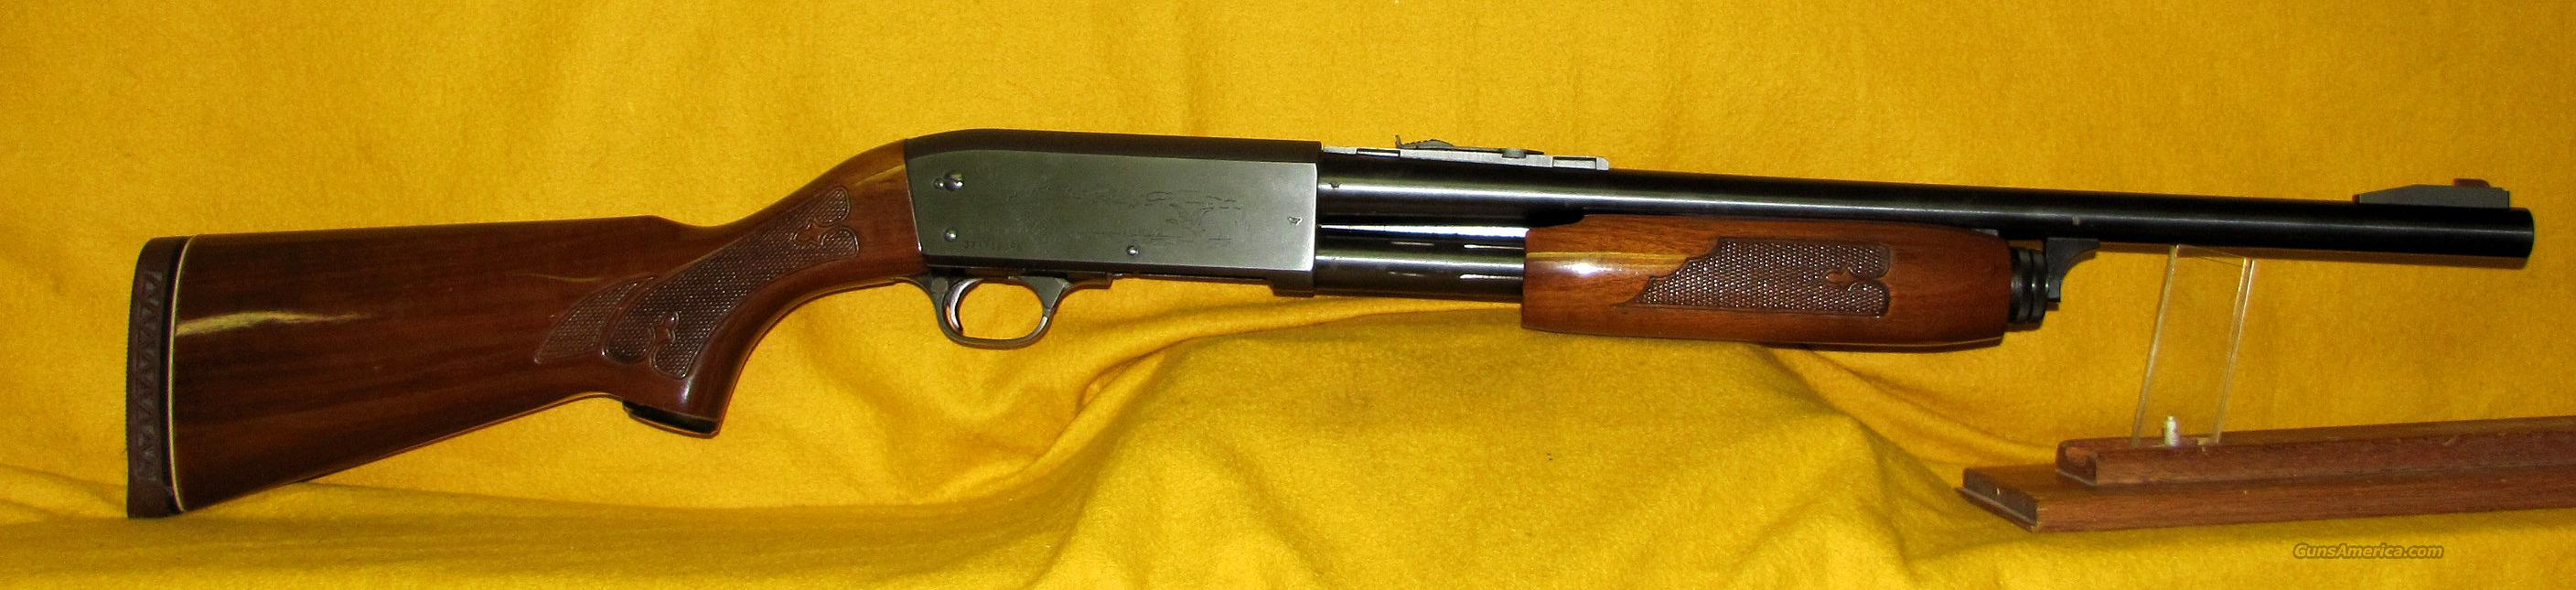 "ITHACA 37 DEERSLAYER 12GA 20""BBL  Guns > Shotguns > Ithaca Shotguns > Pump"